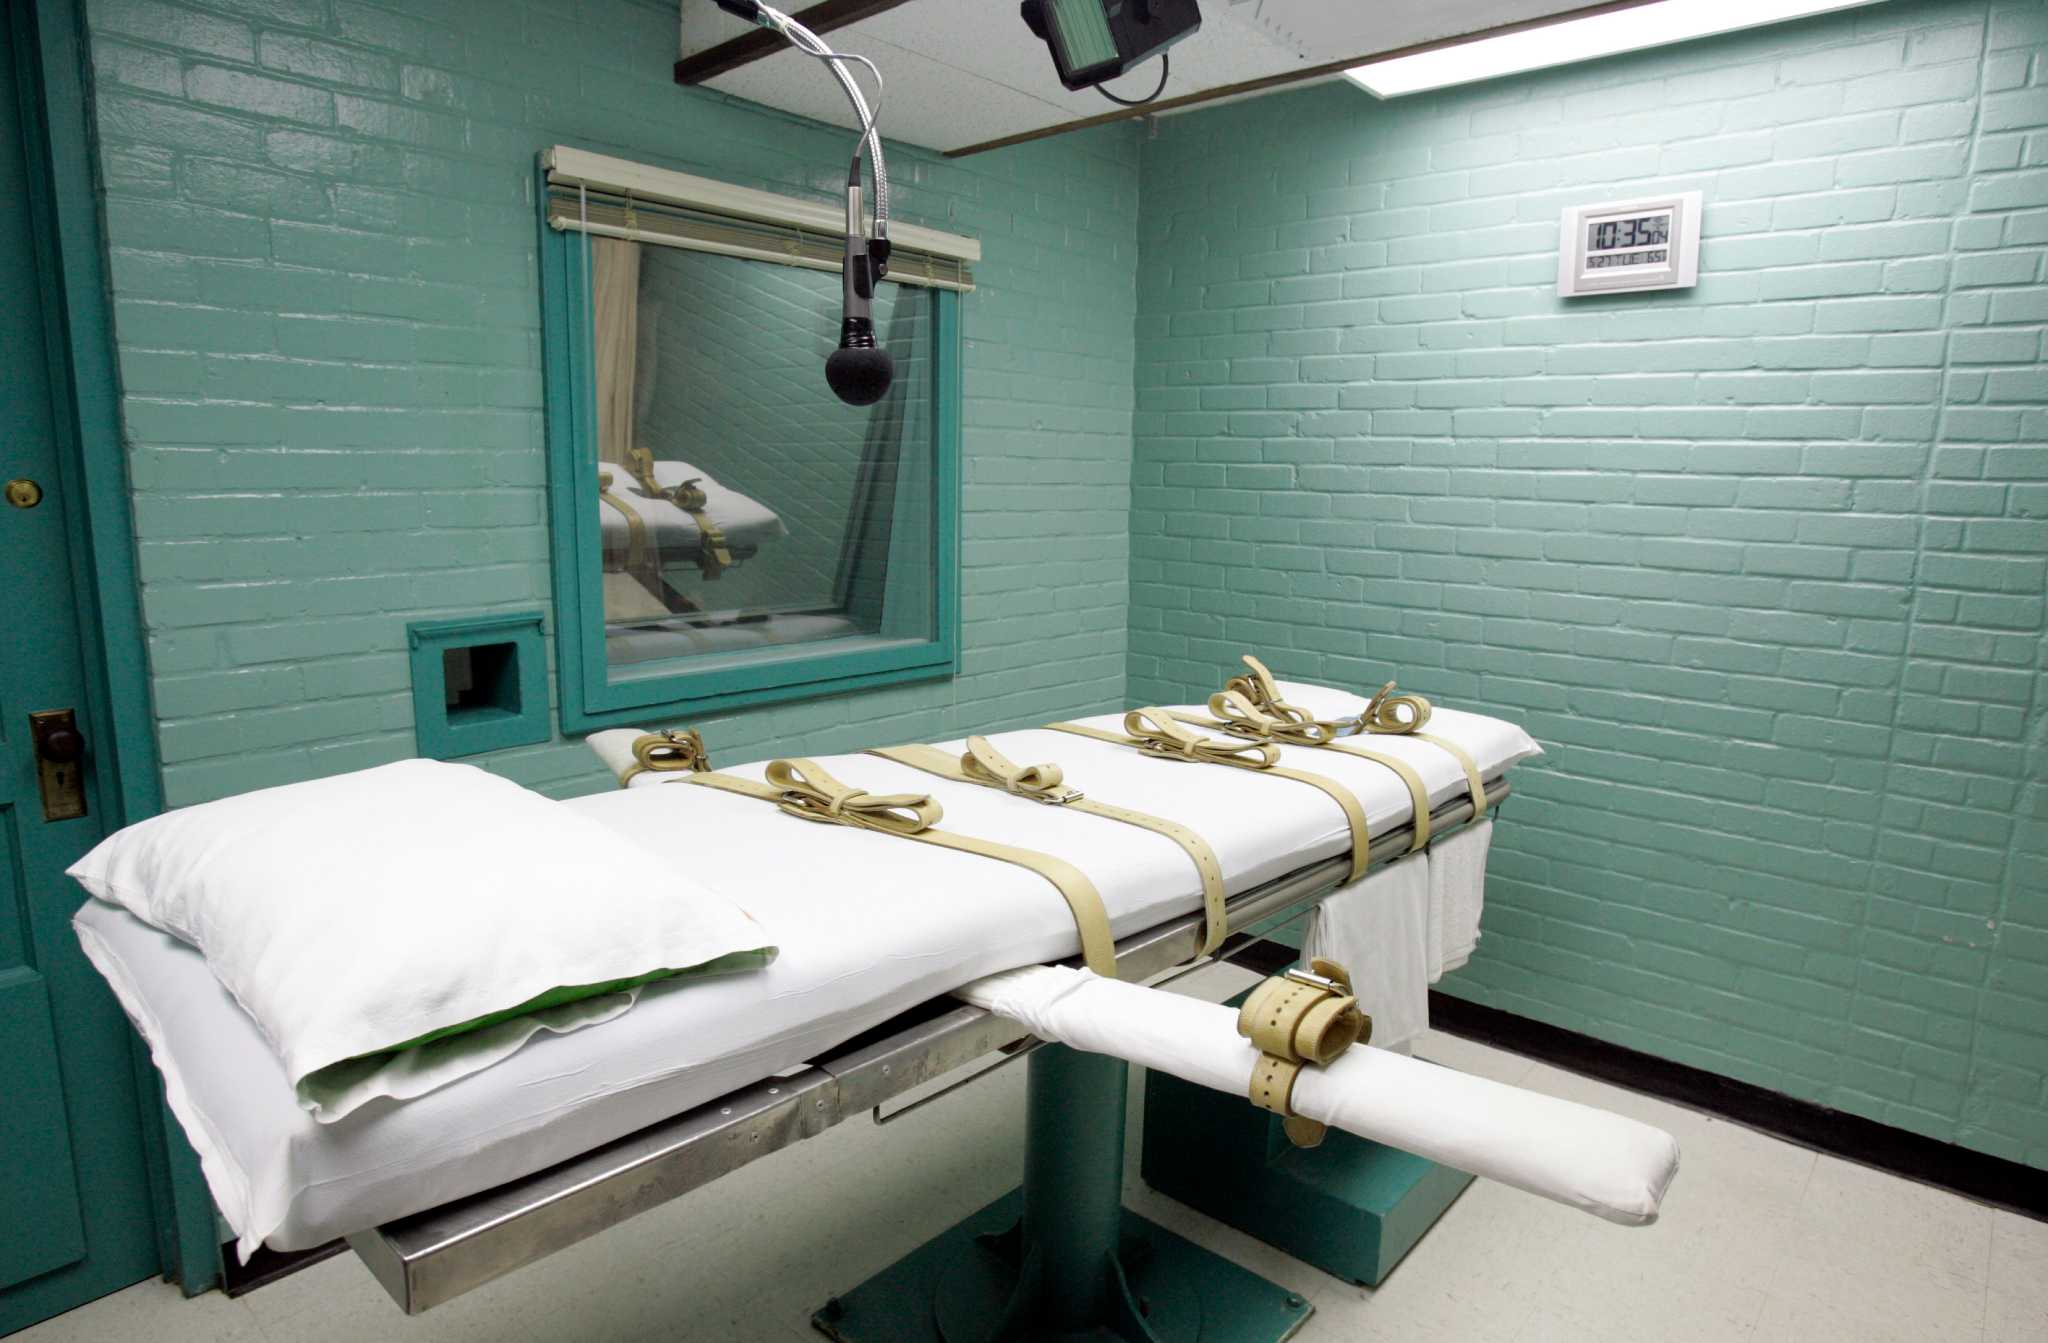 death penalty houston chronicle